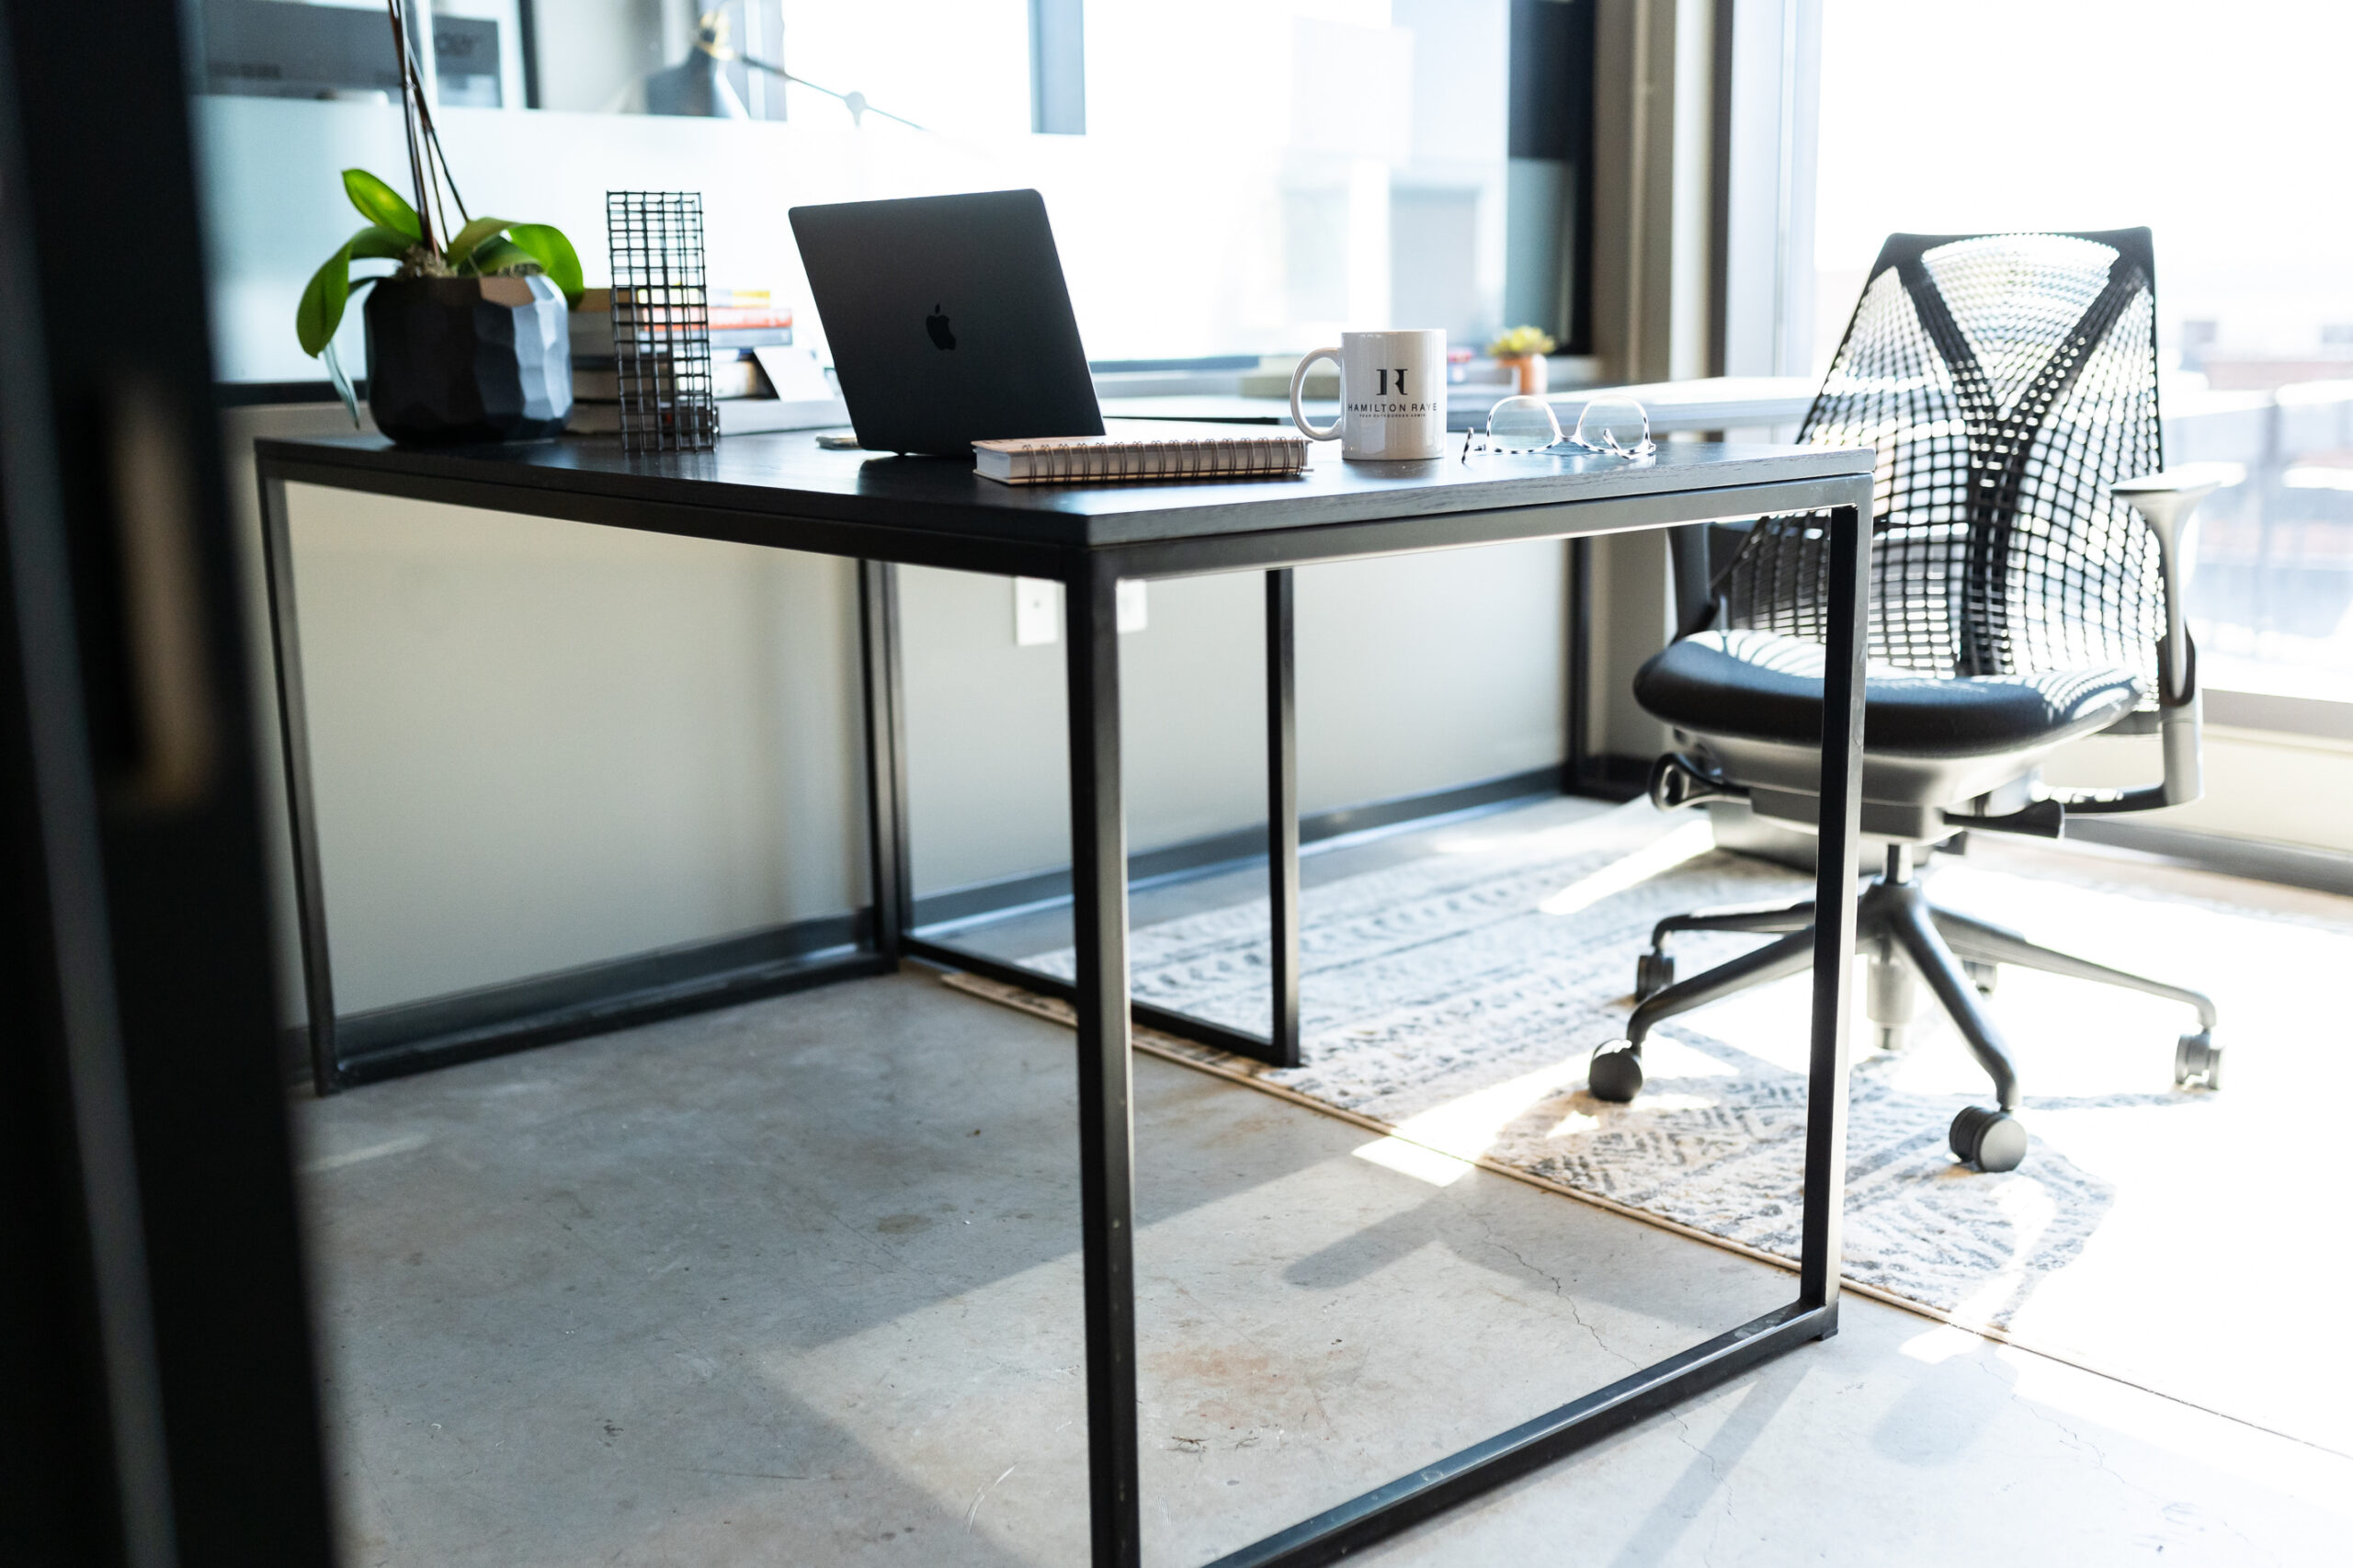 Simplify your workspace